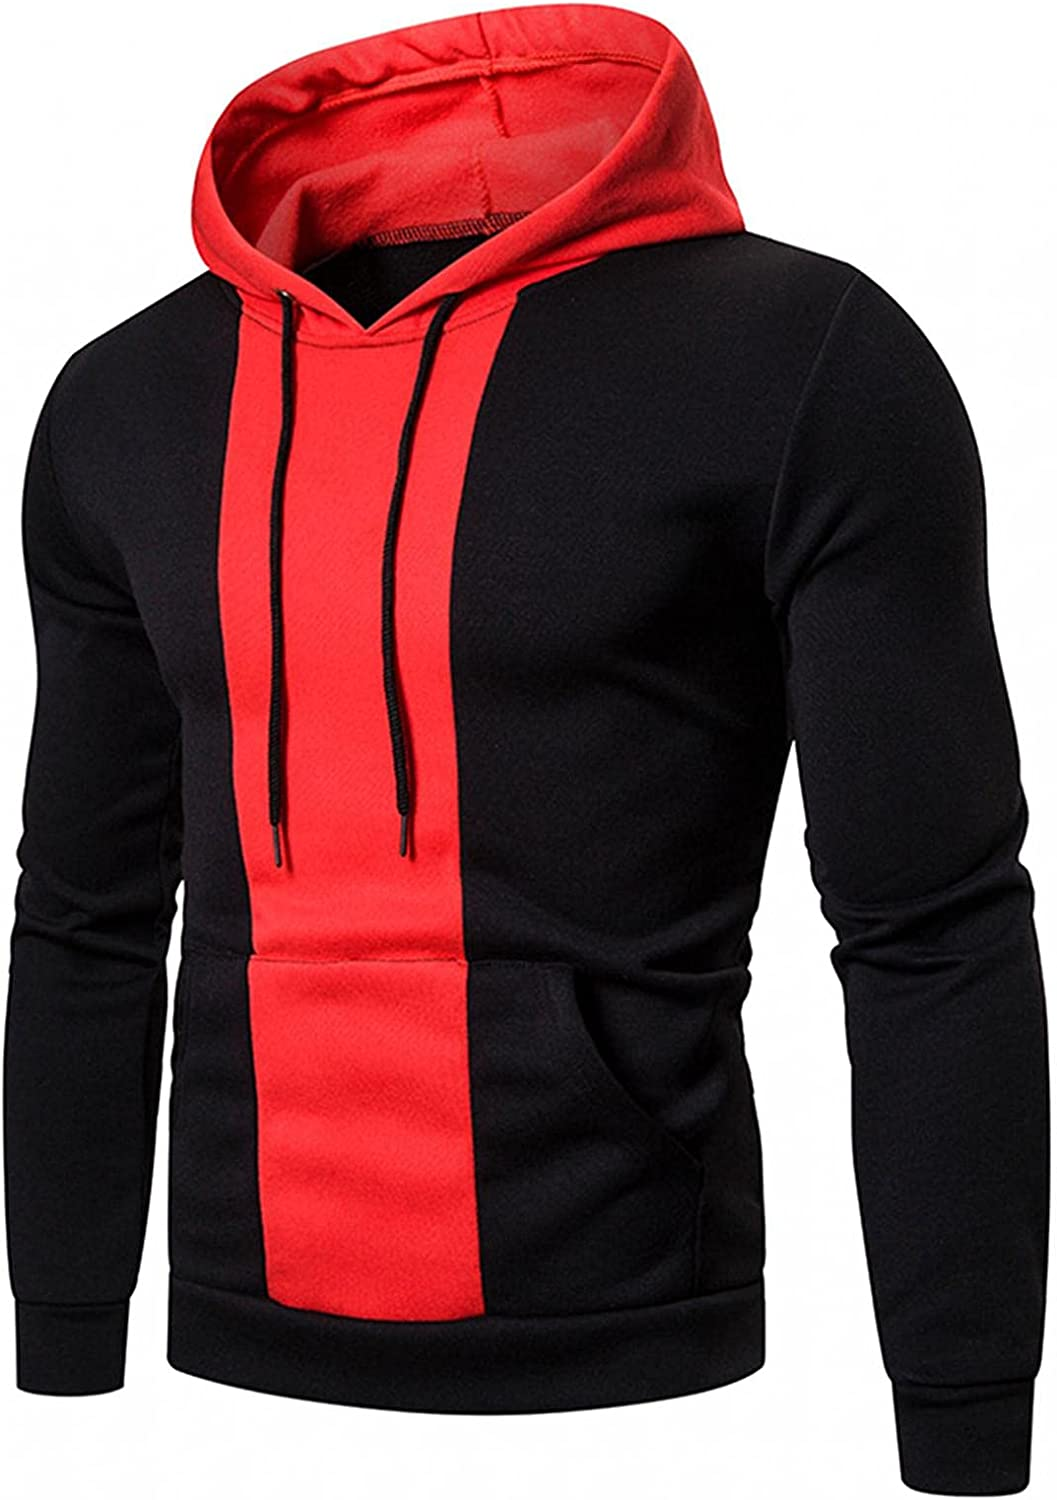 Men's Hoodie Stitching Color Athletic Sweatshirt Casual Long Sleeve Drawstring Pullover Tops Gym Hooded with Pockets